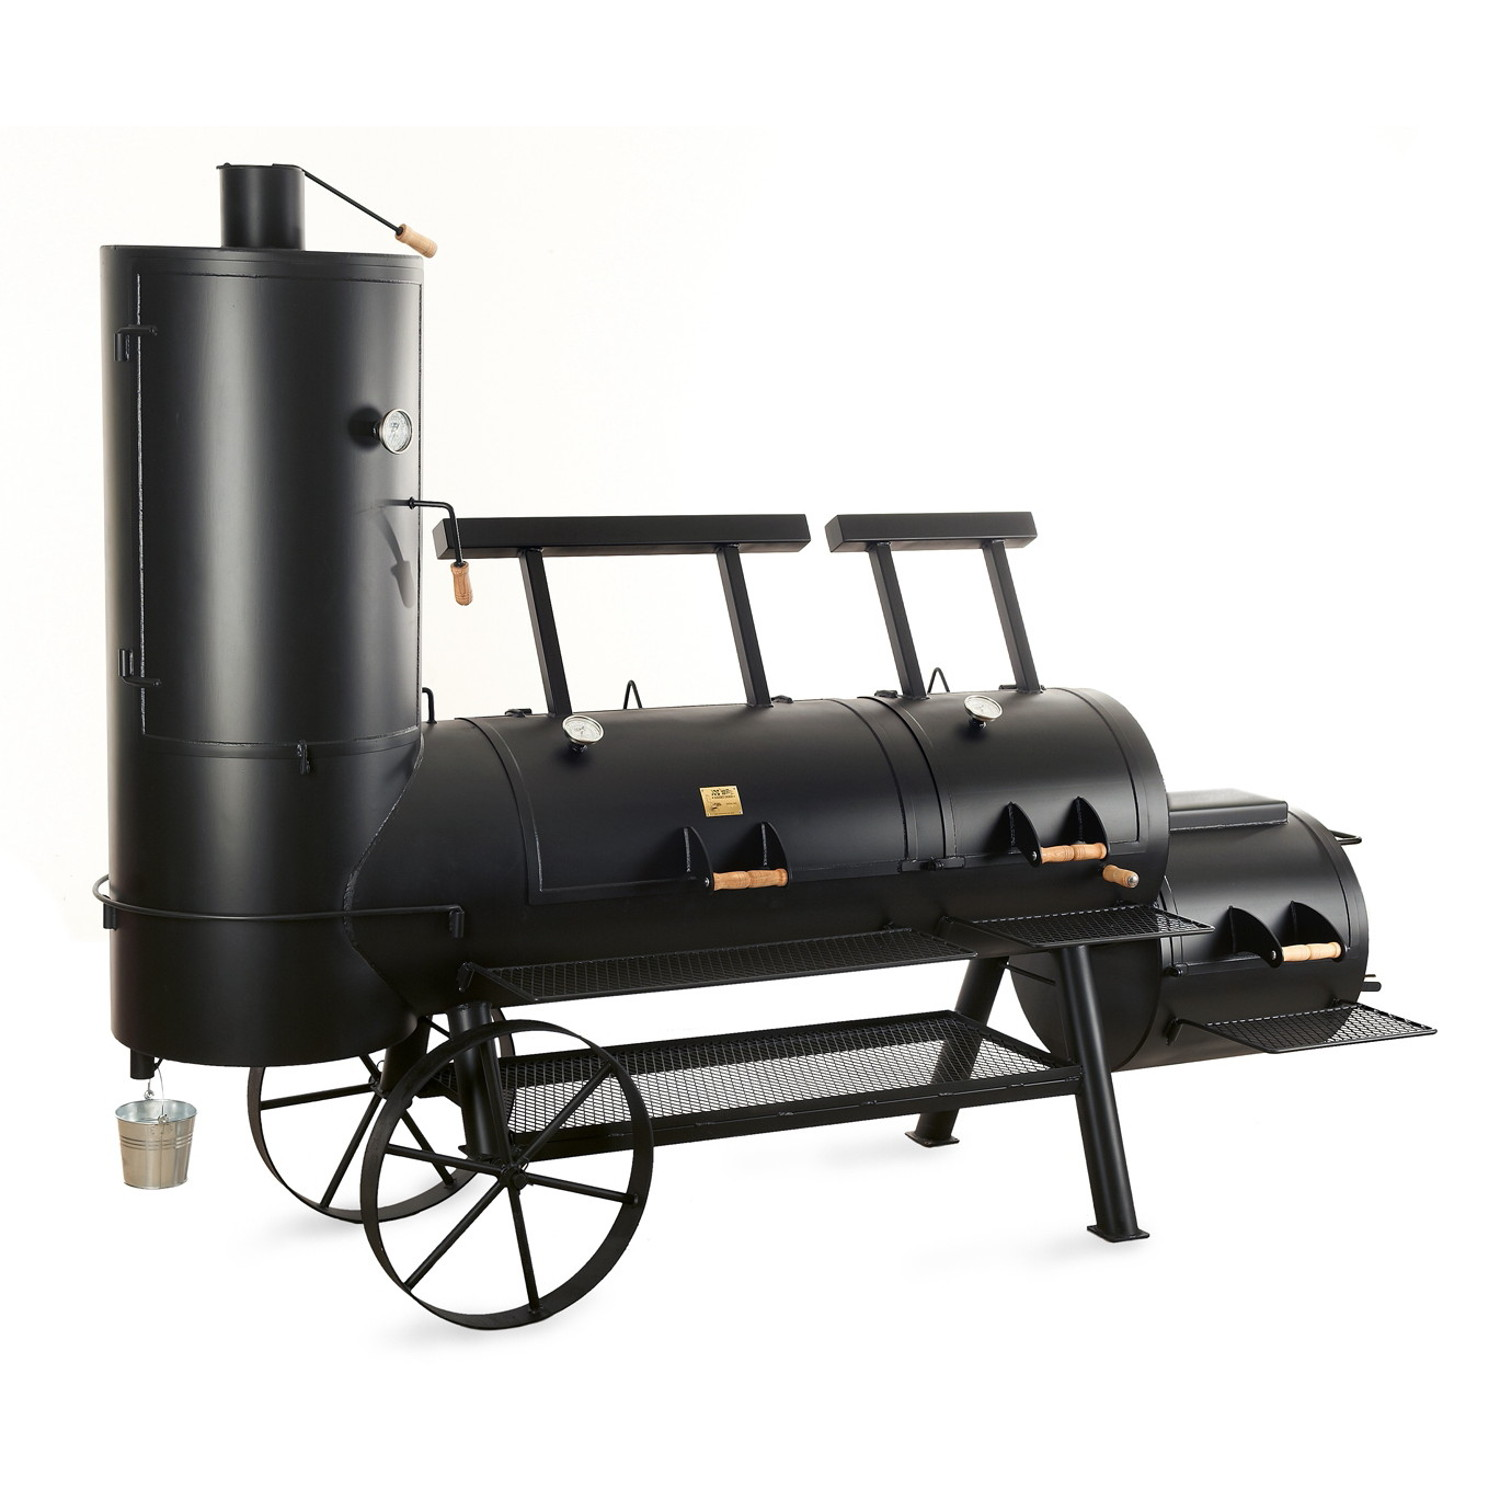 joe 39 s bbq smoker 24 extended catering smoker. Black Bedroom Furniture Sets. Home Design Ideas